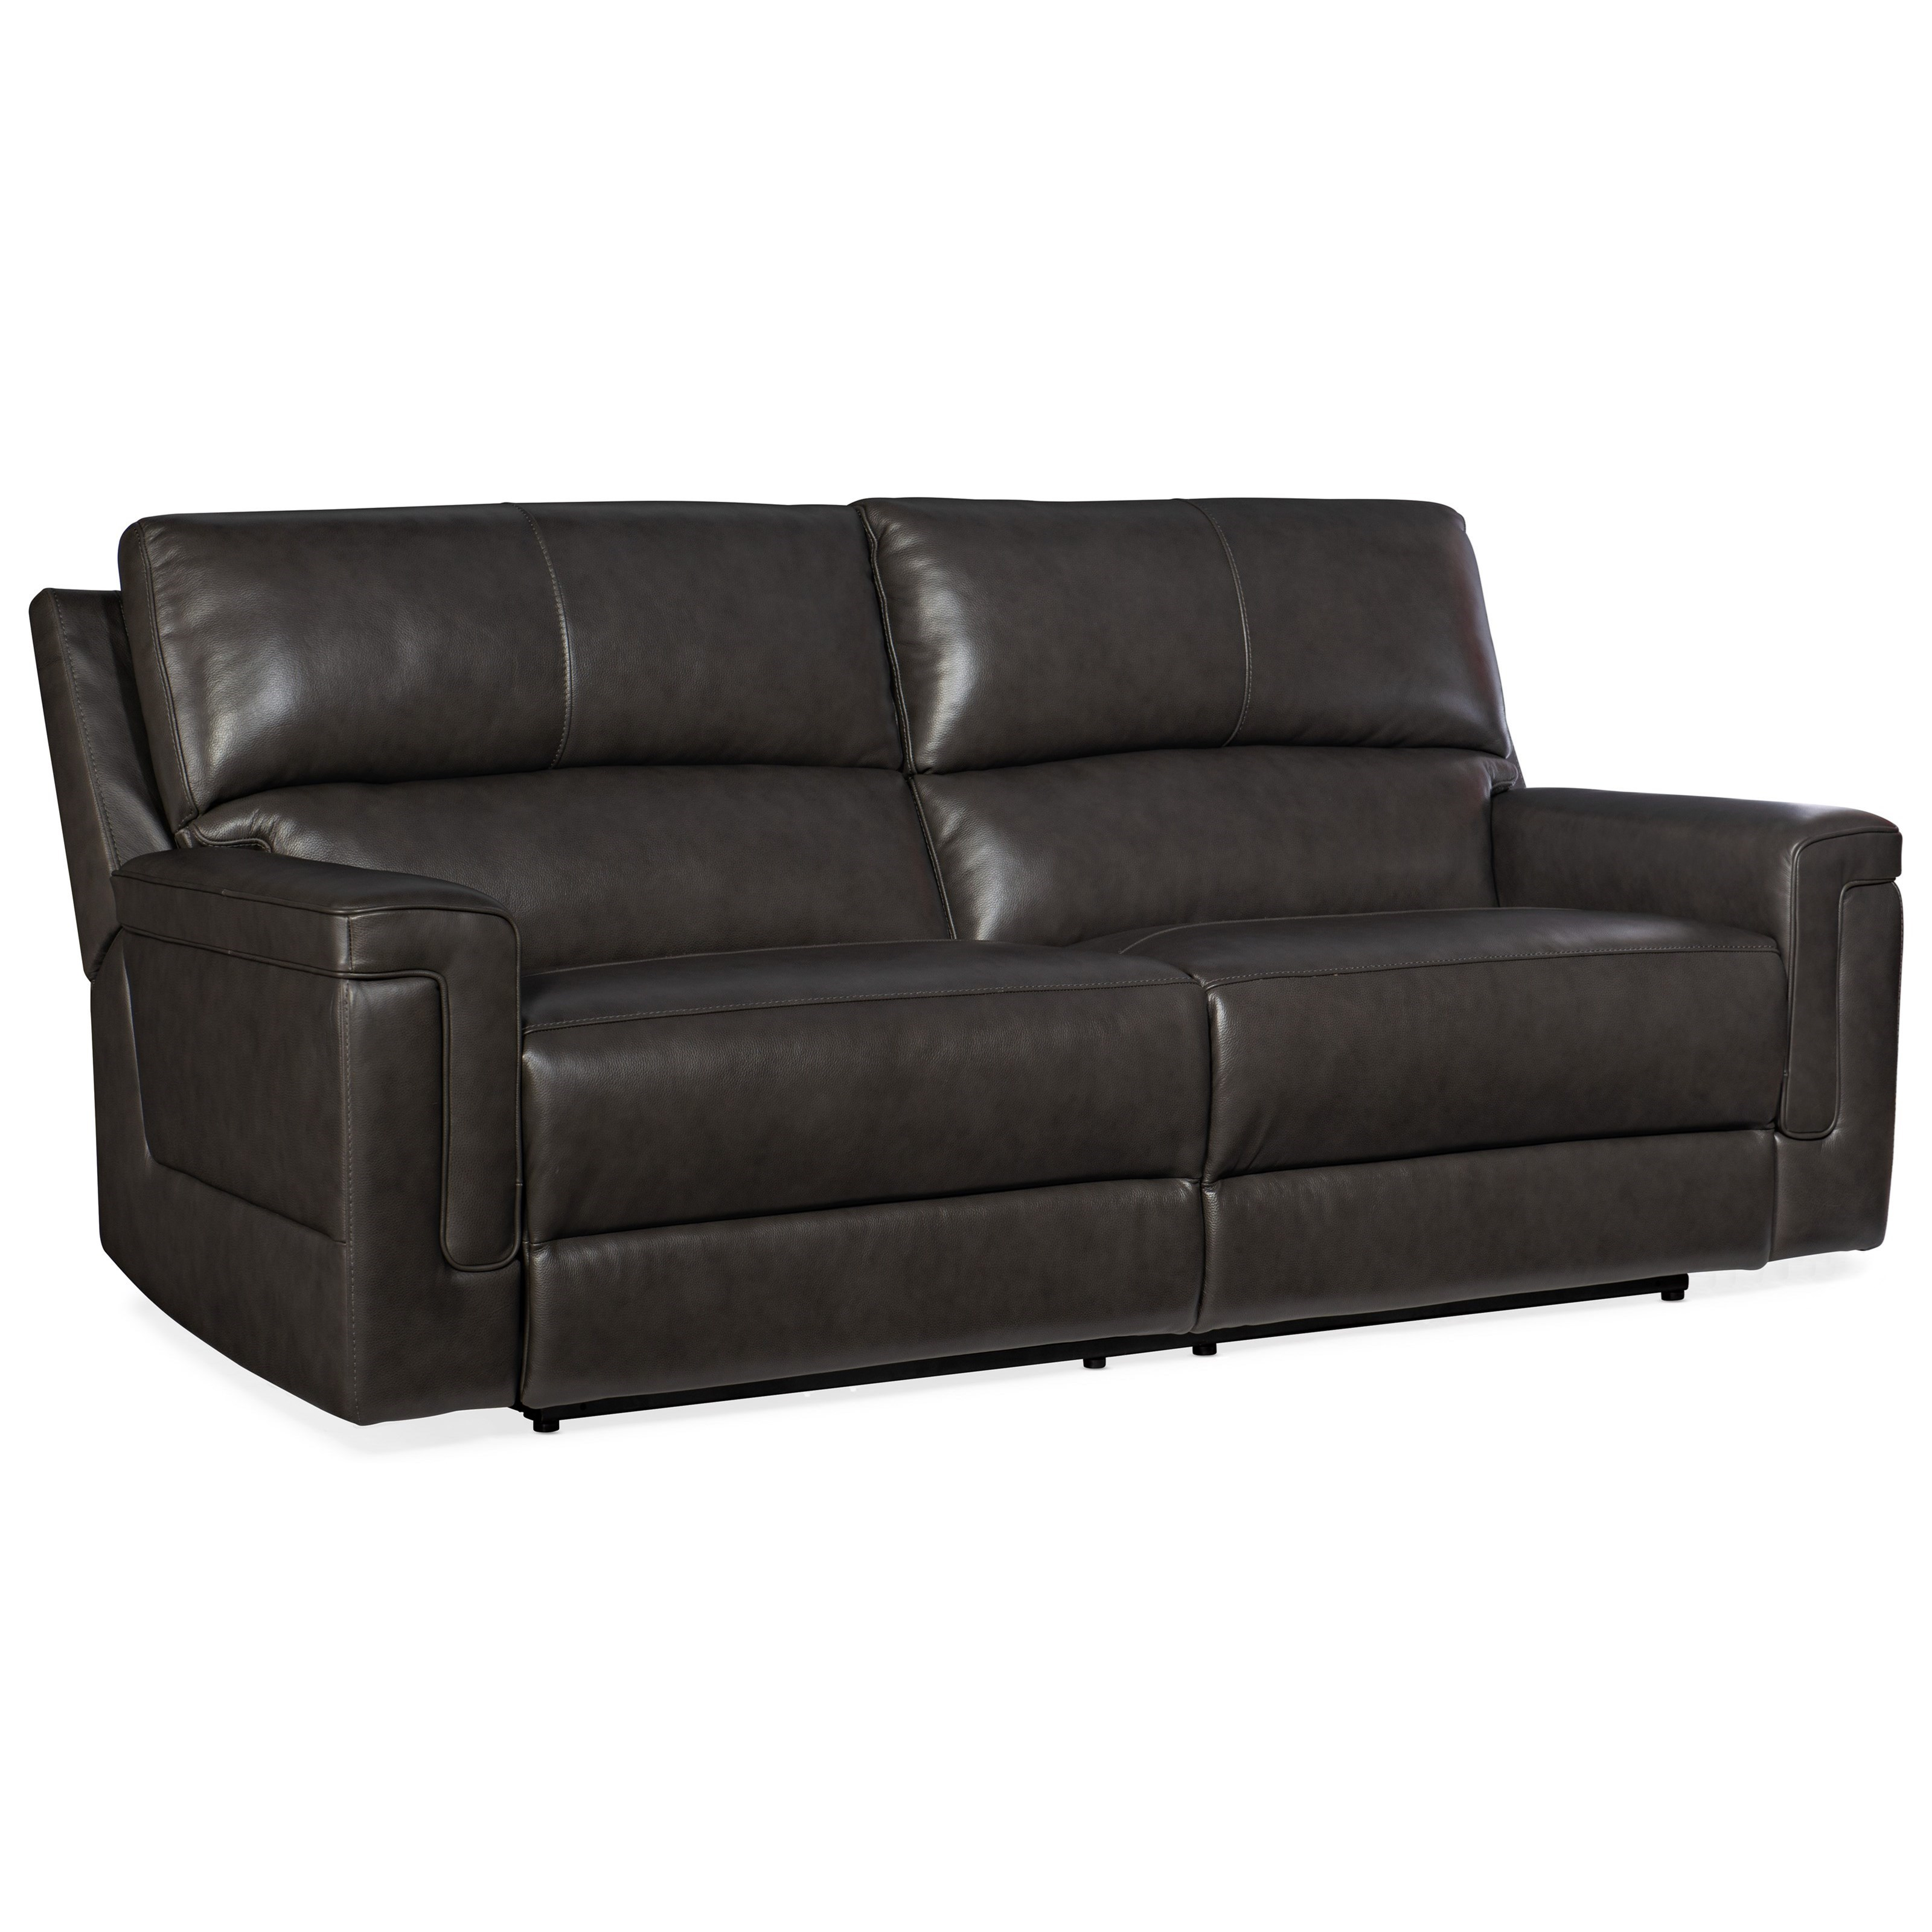 Gable Power Reclining Leather Sofa by Hooker Furniture at Suburban Furniture